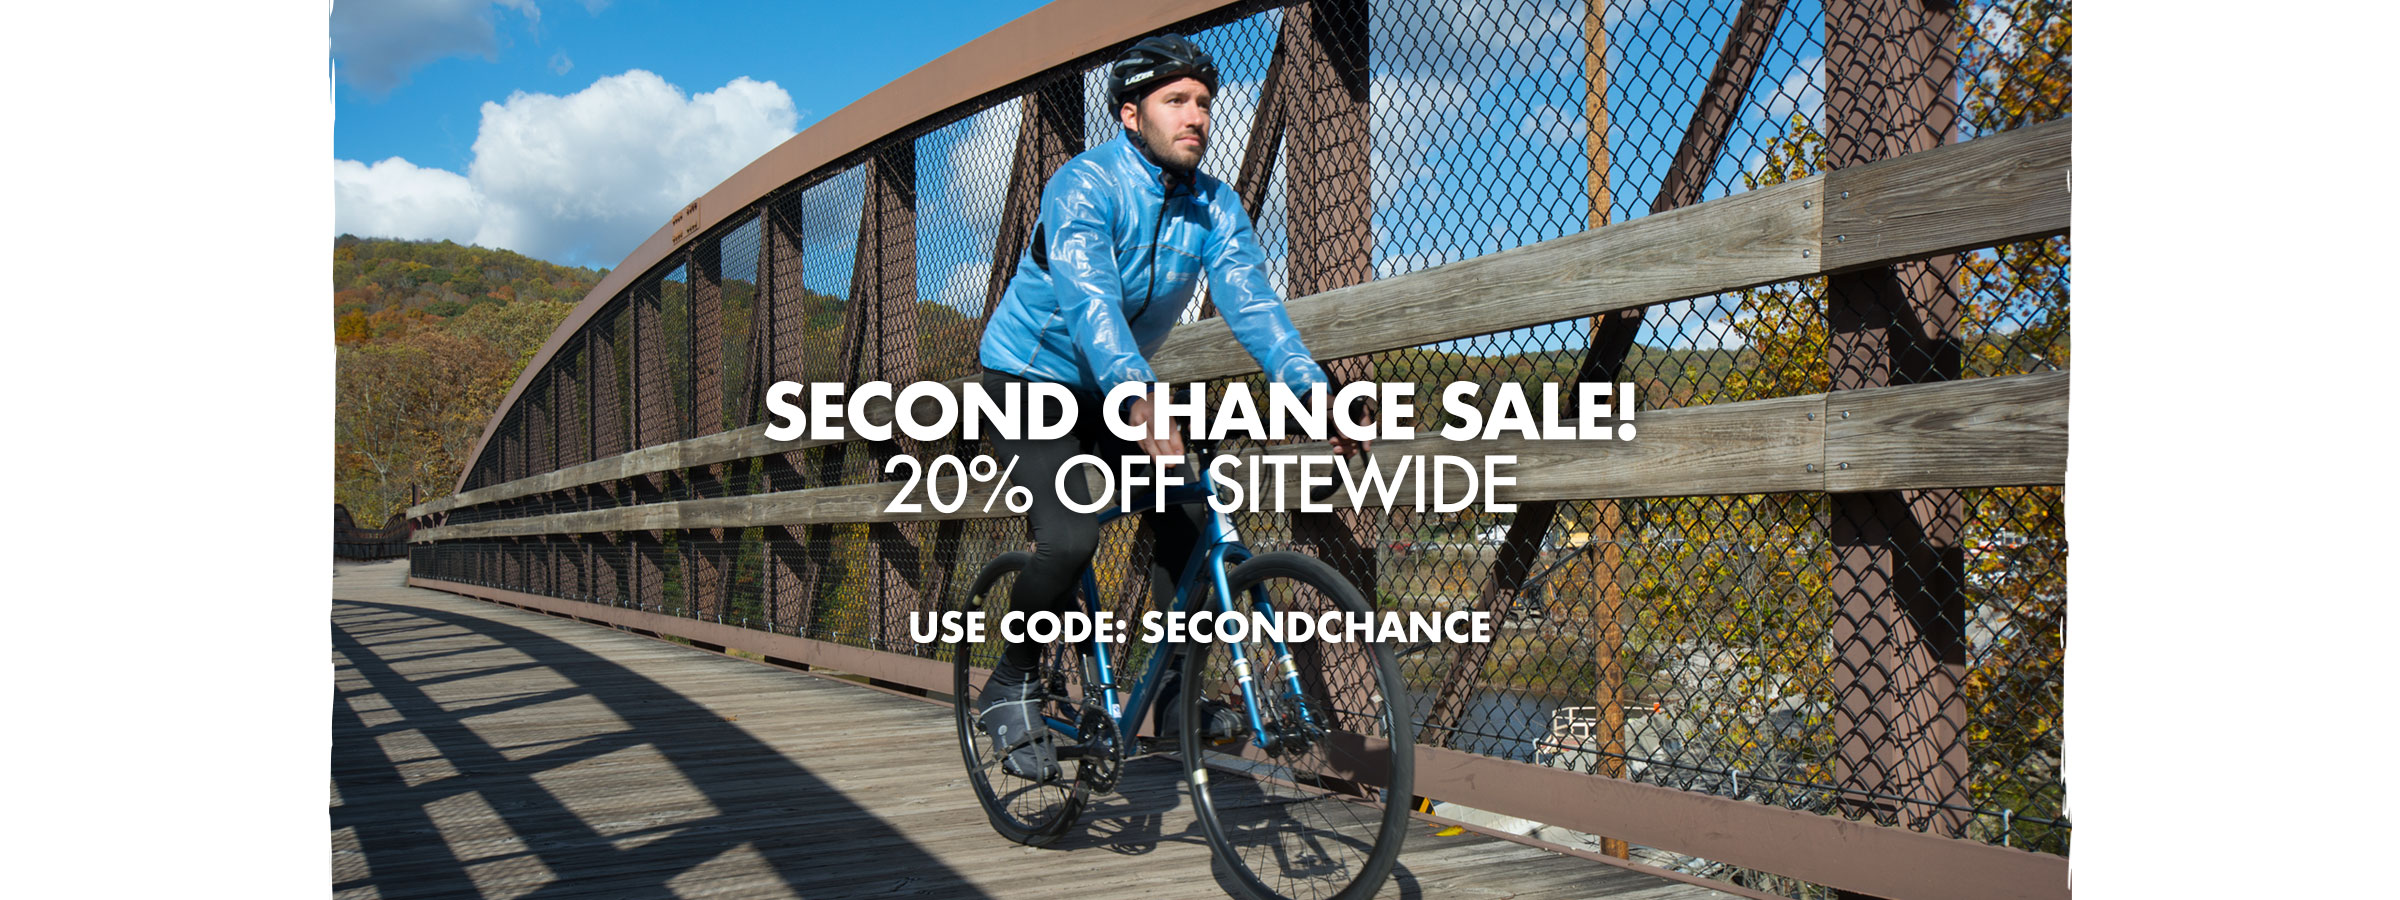 second chance sale